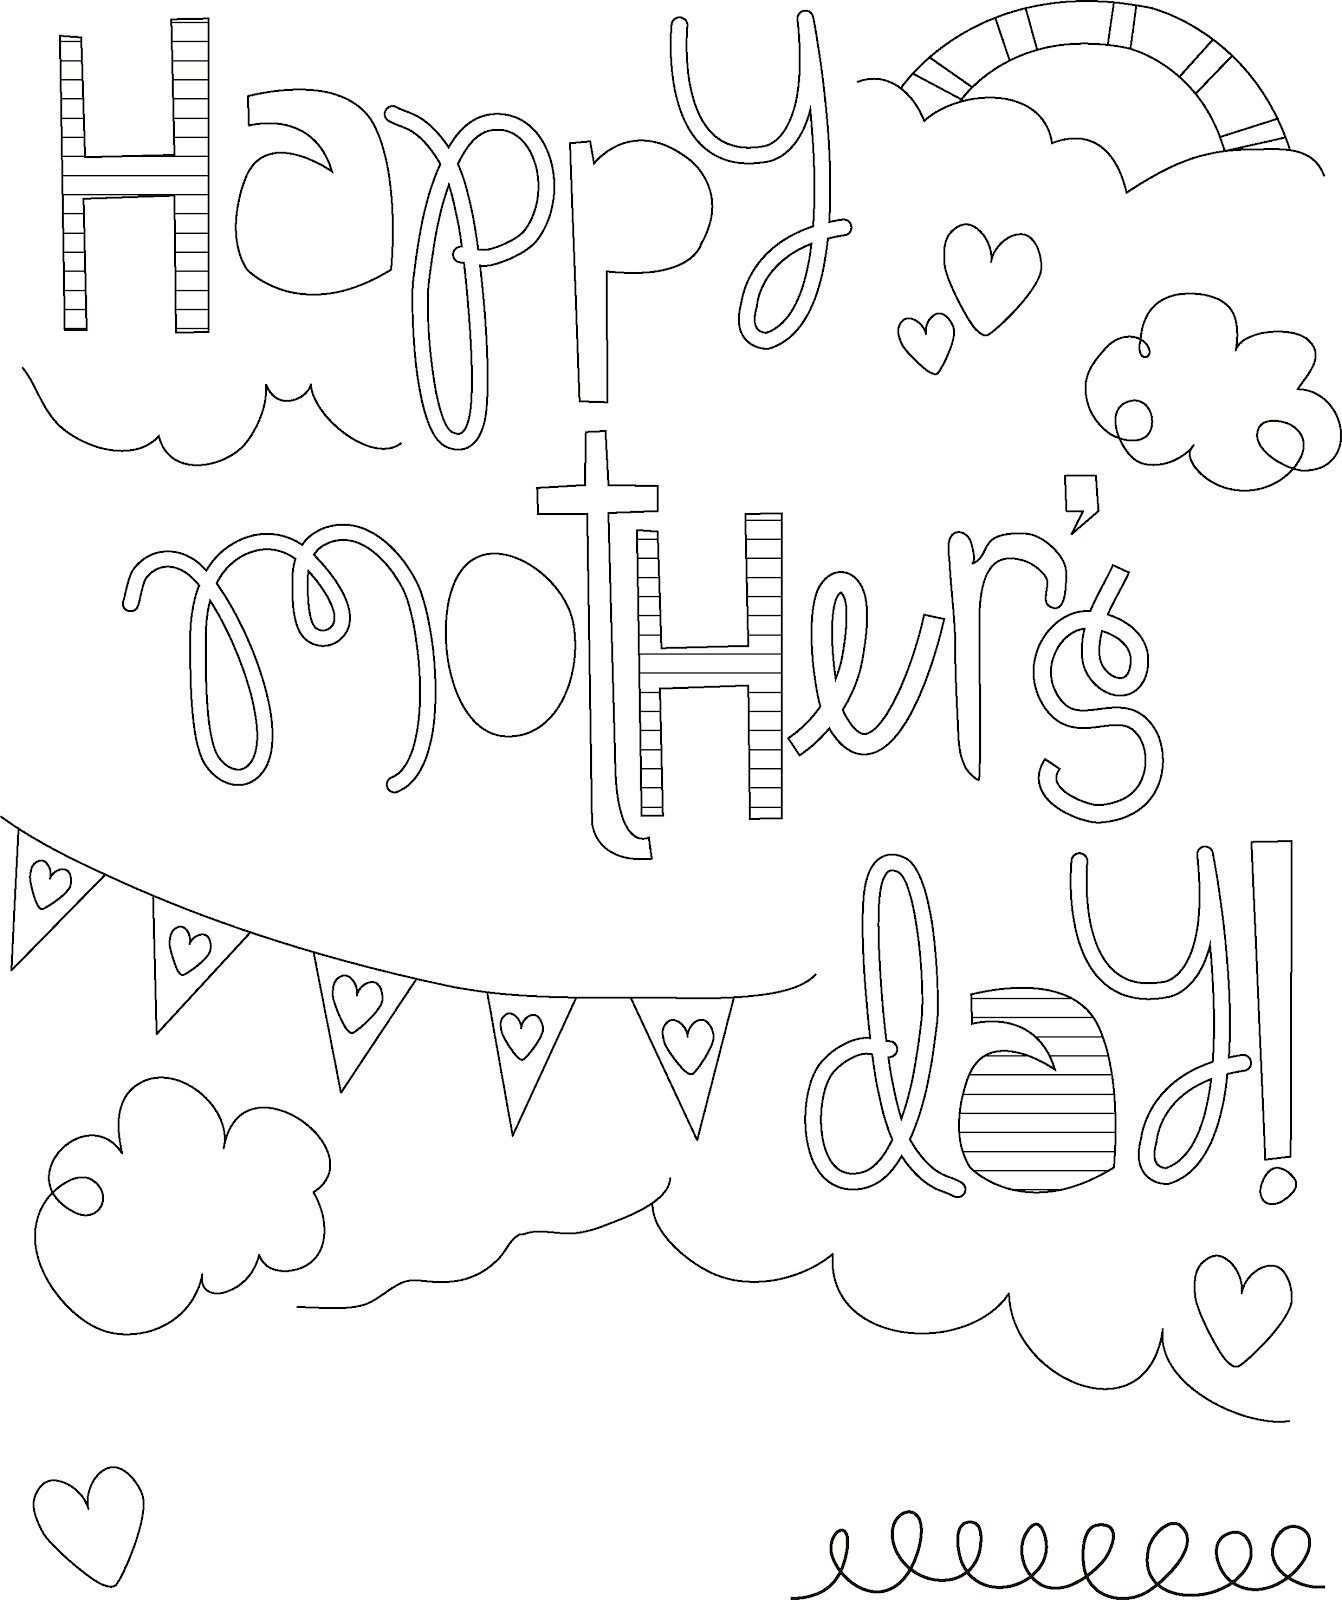 colouring pages for mothers day mcbrides on the go have a colorful mother39s day colouring for pages day mothers